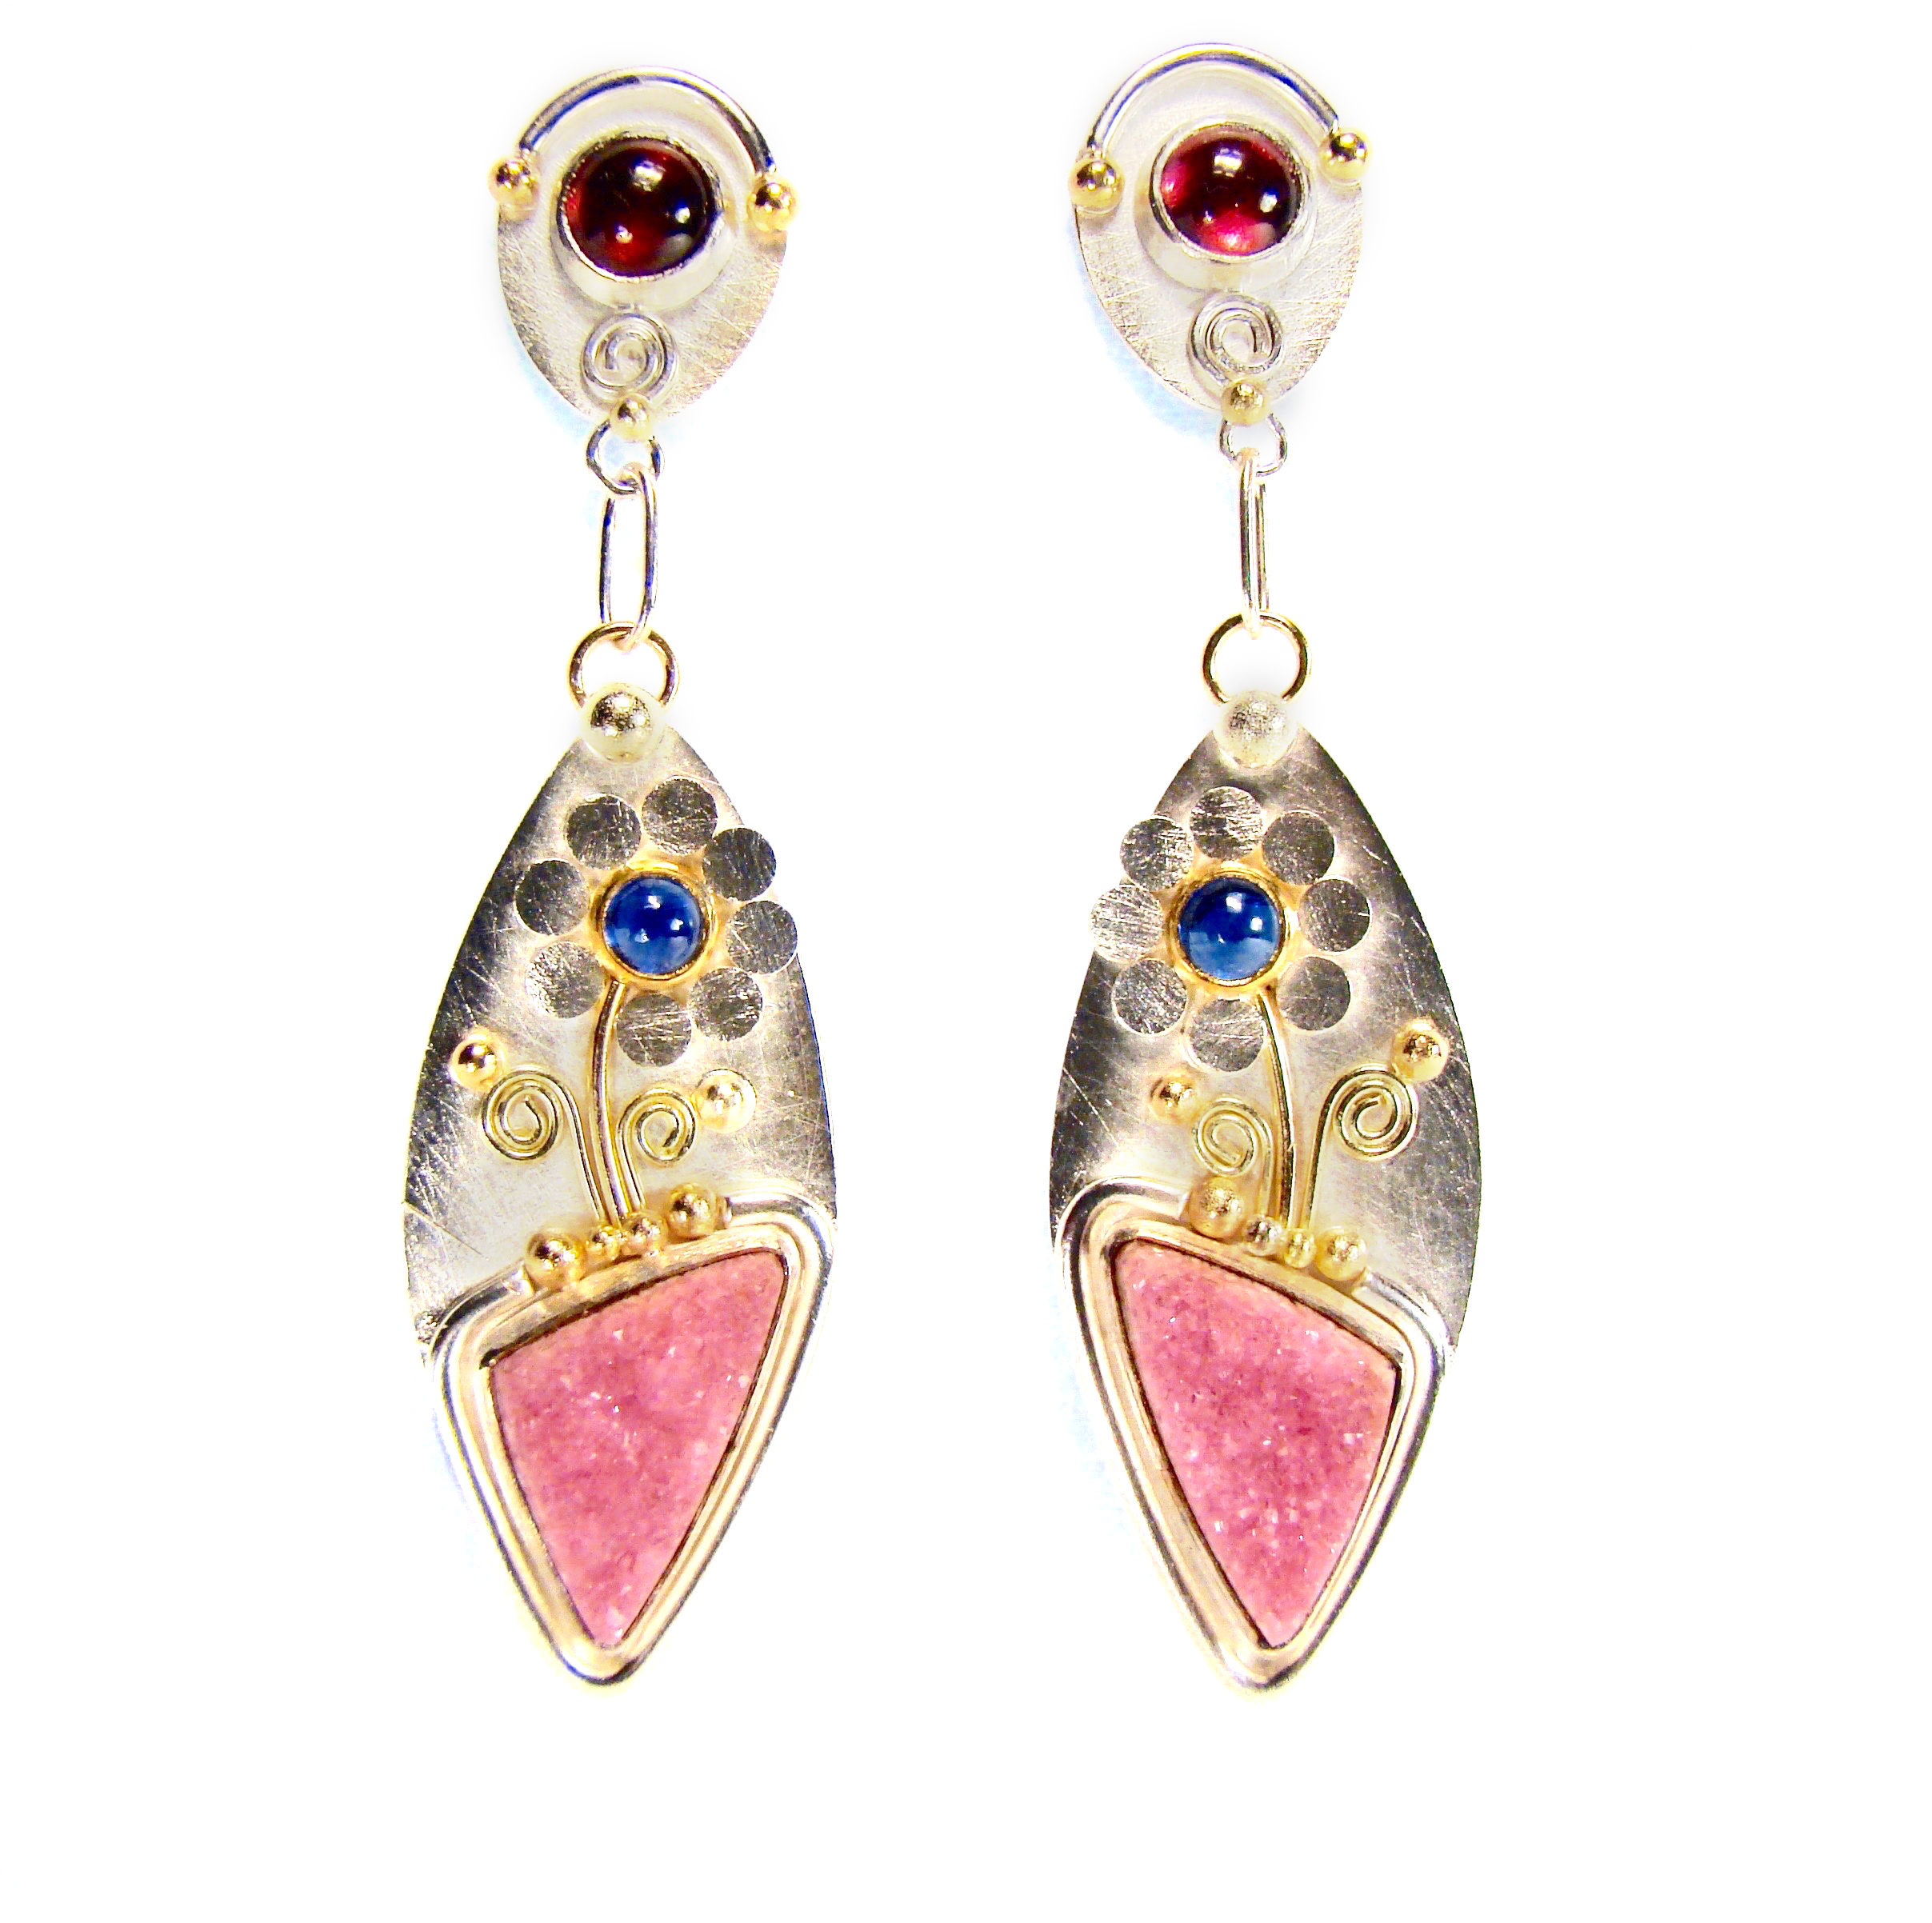 Pink Druze Earrings #791.jpg